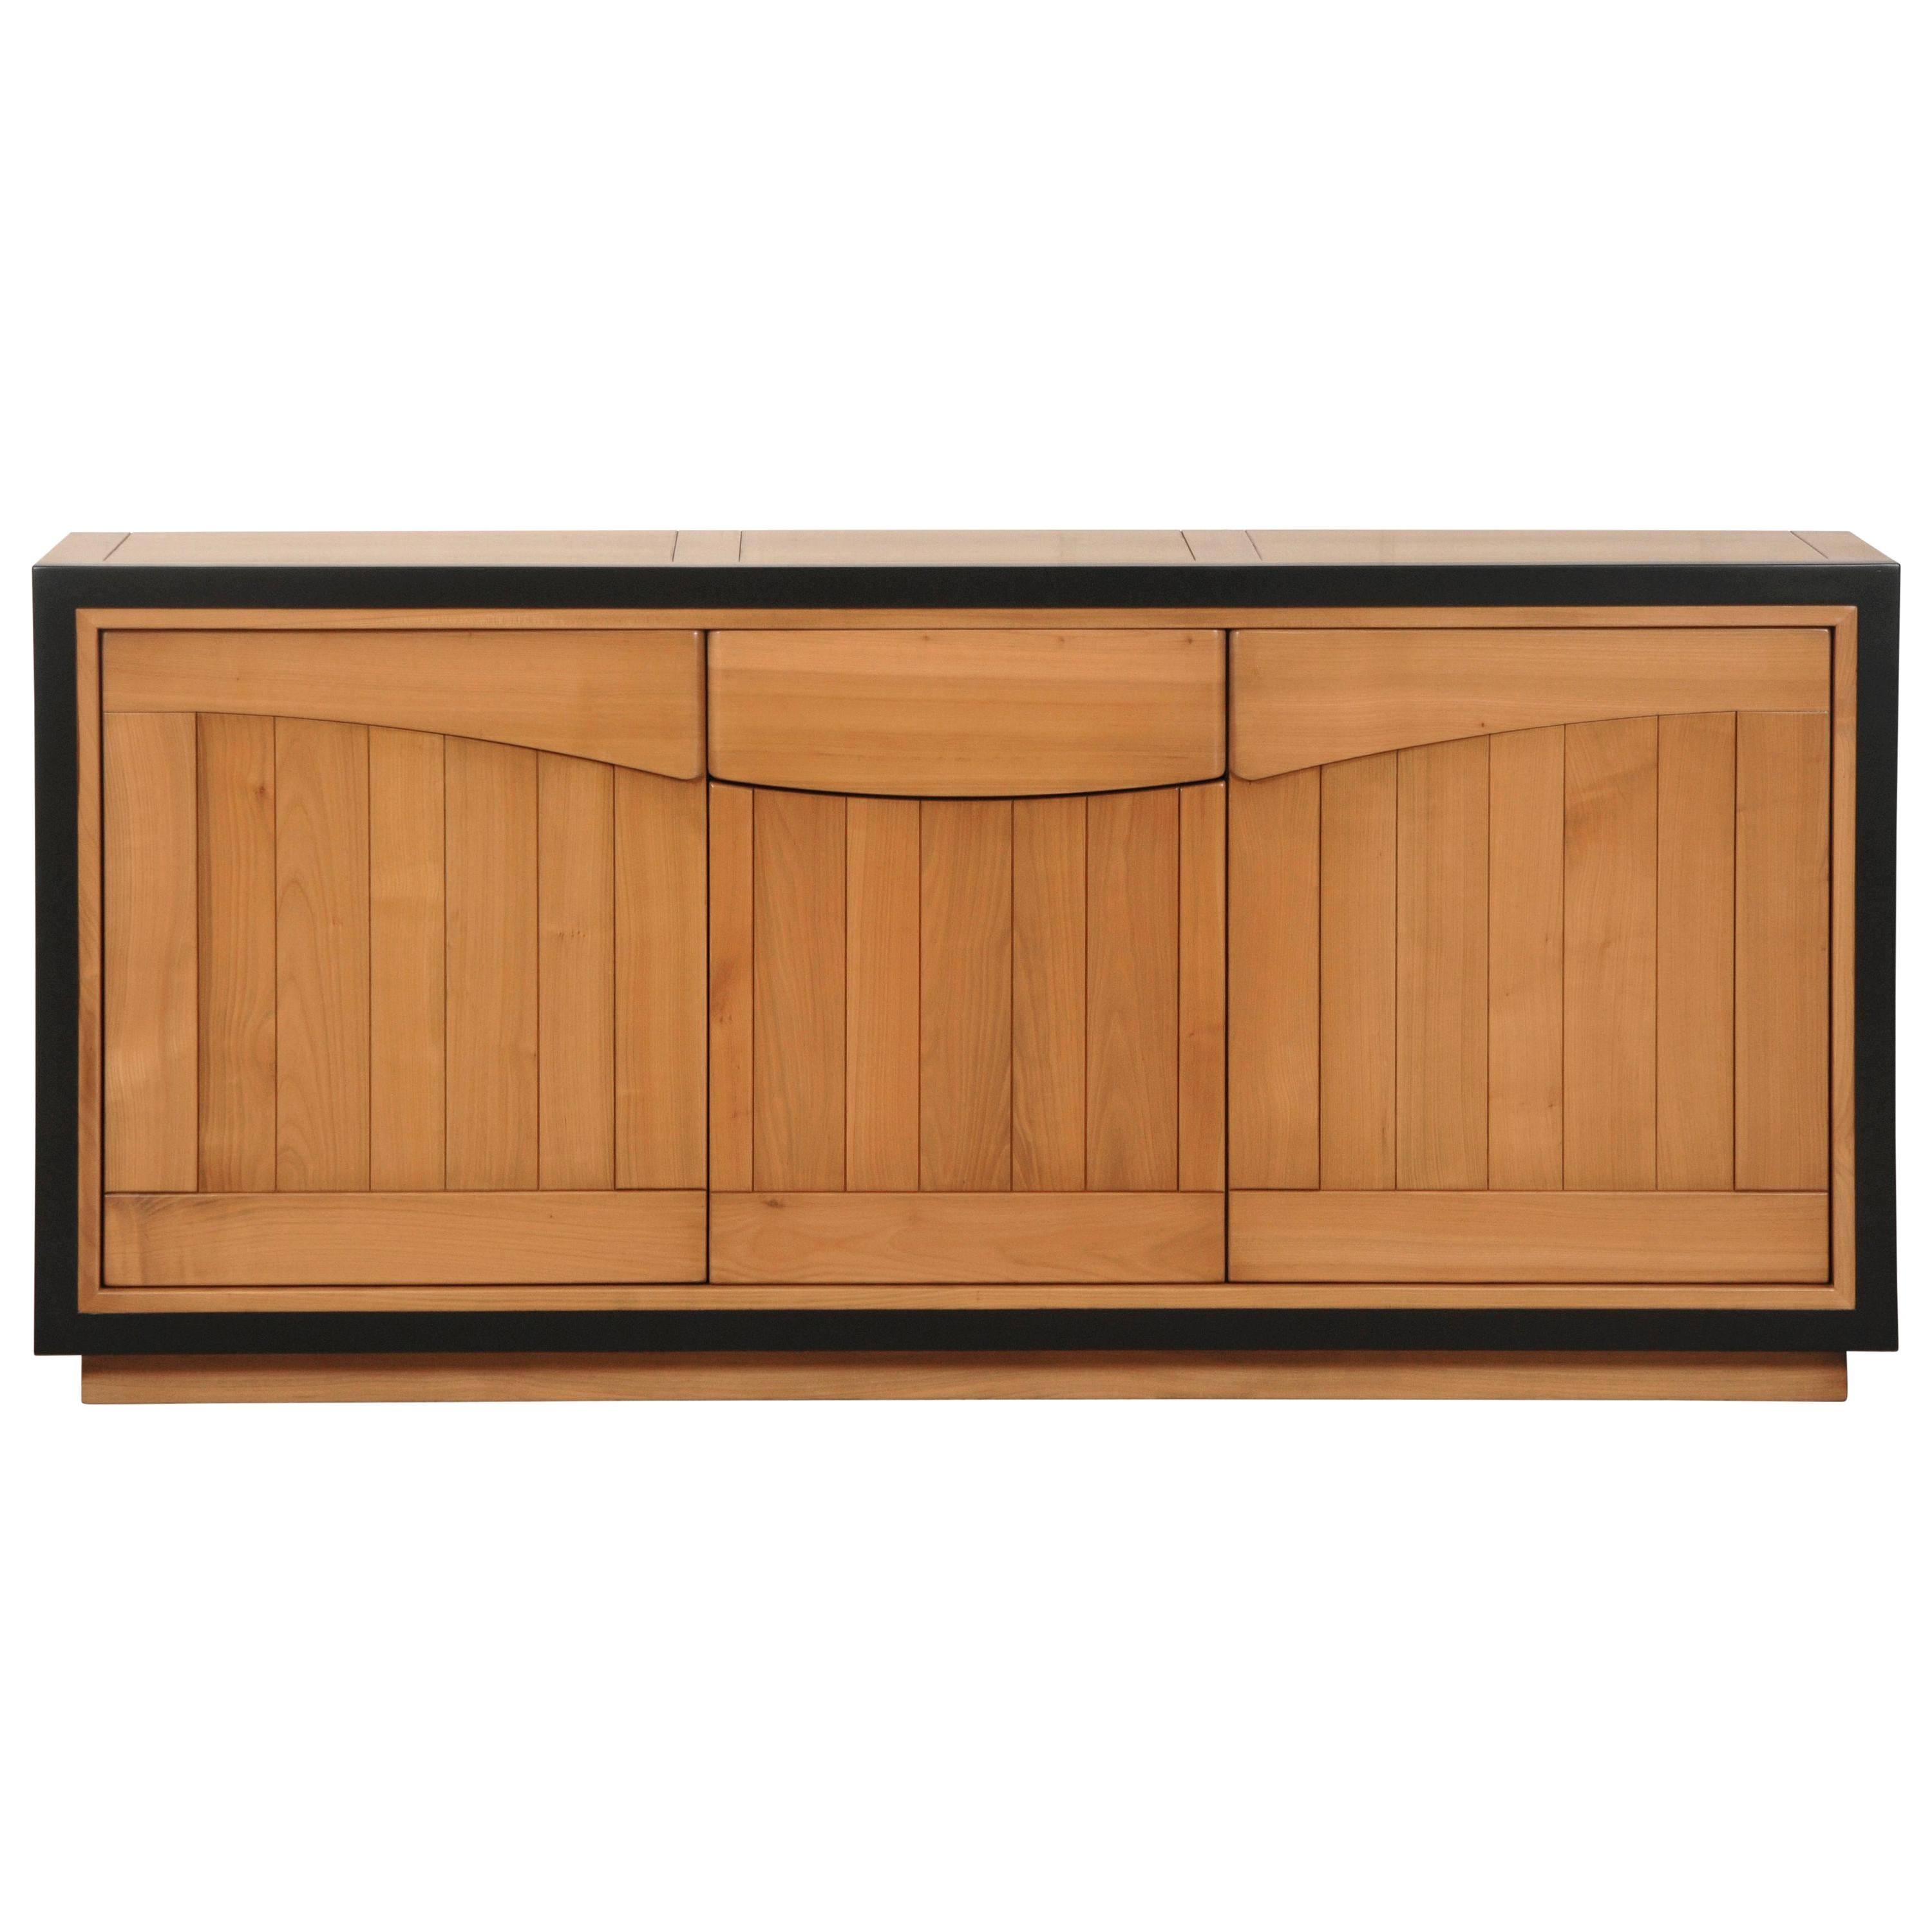 3 doors contemporary Sideboard in Cherry, 100% Made in France